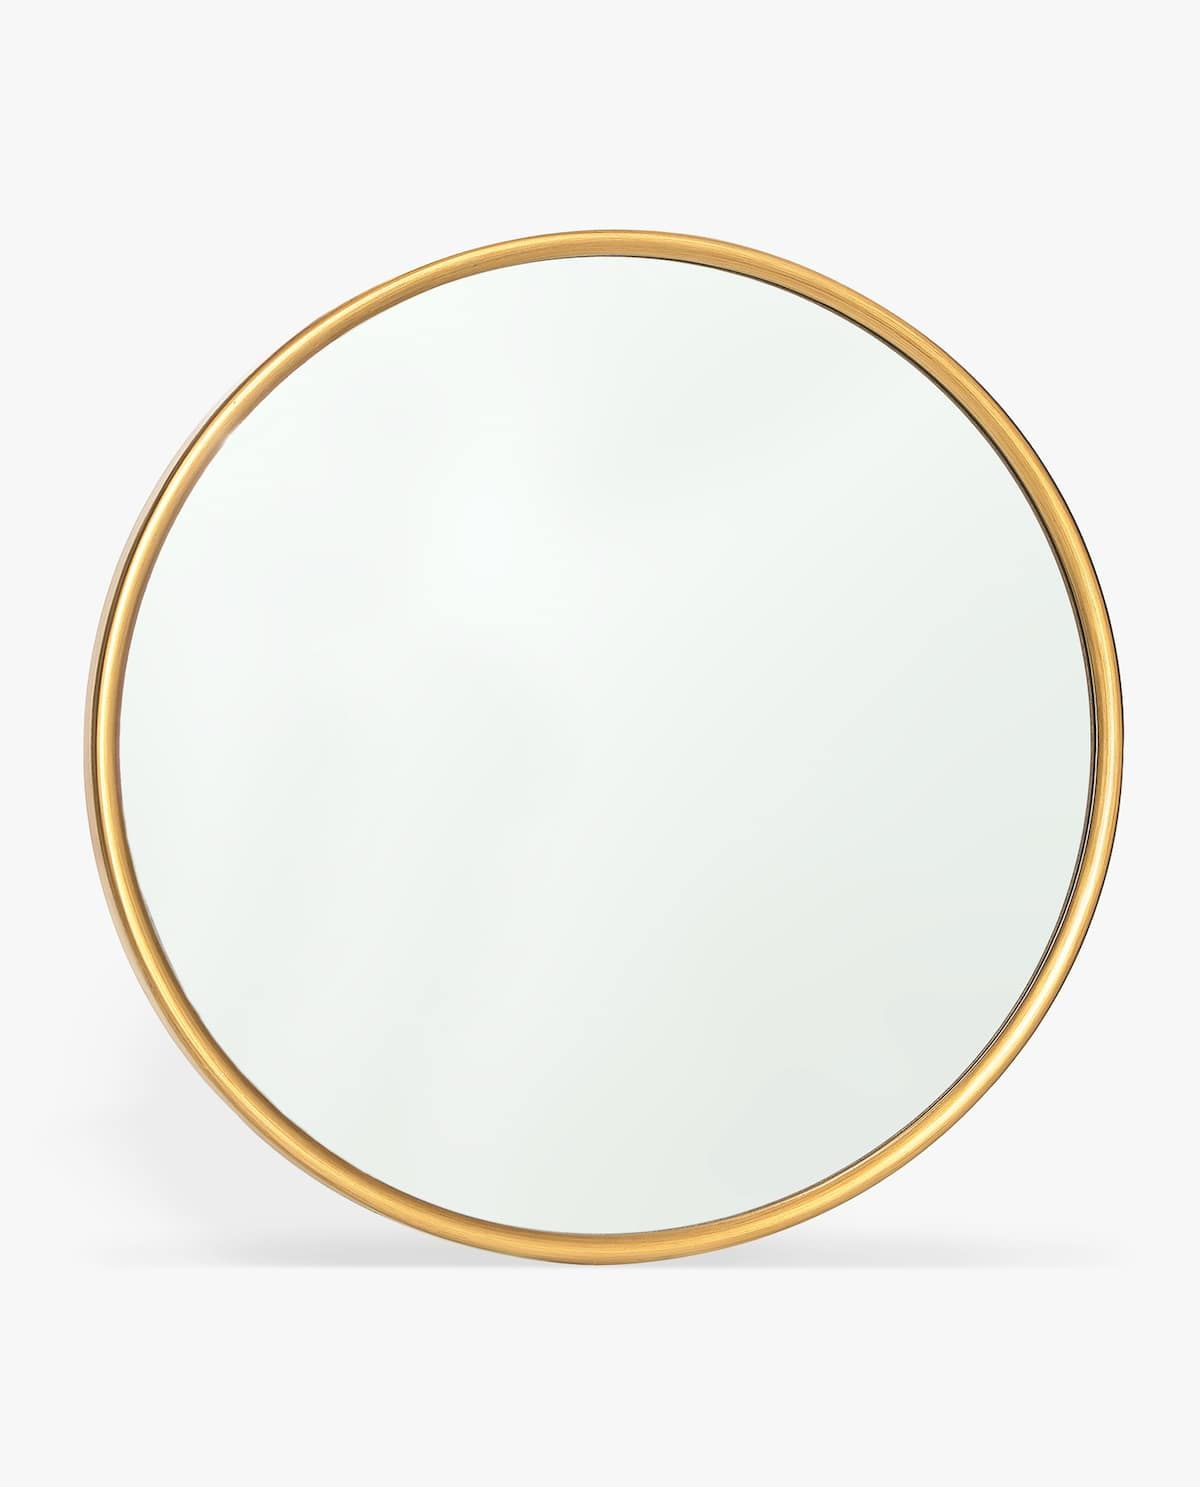 Image 1 Of The Product Round Mirror With Golden Frame Gold Framed Mirror Round Gold Mirror Zara Home